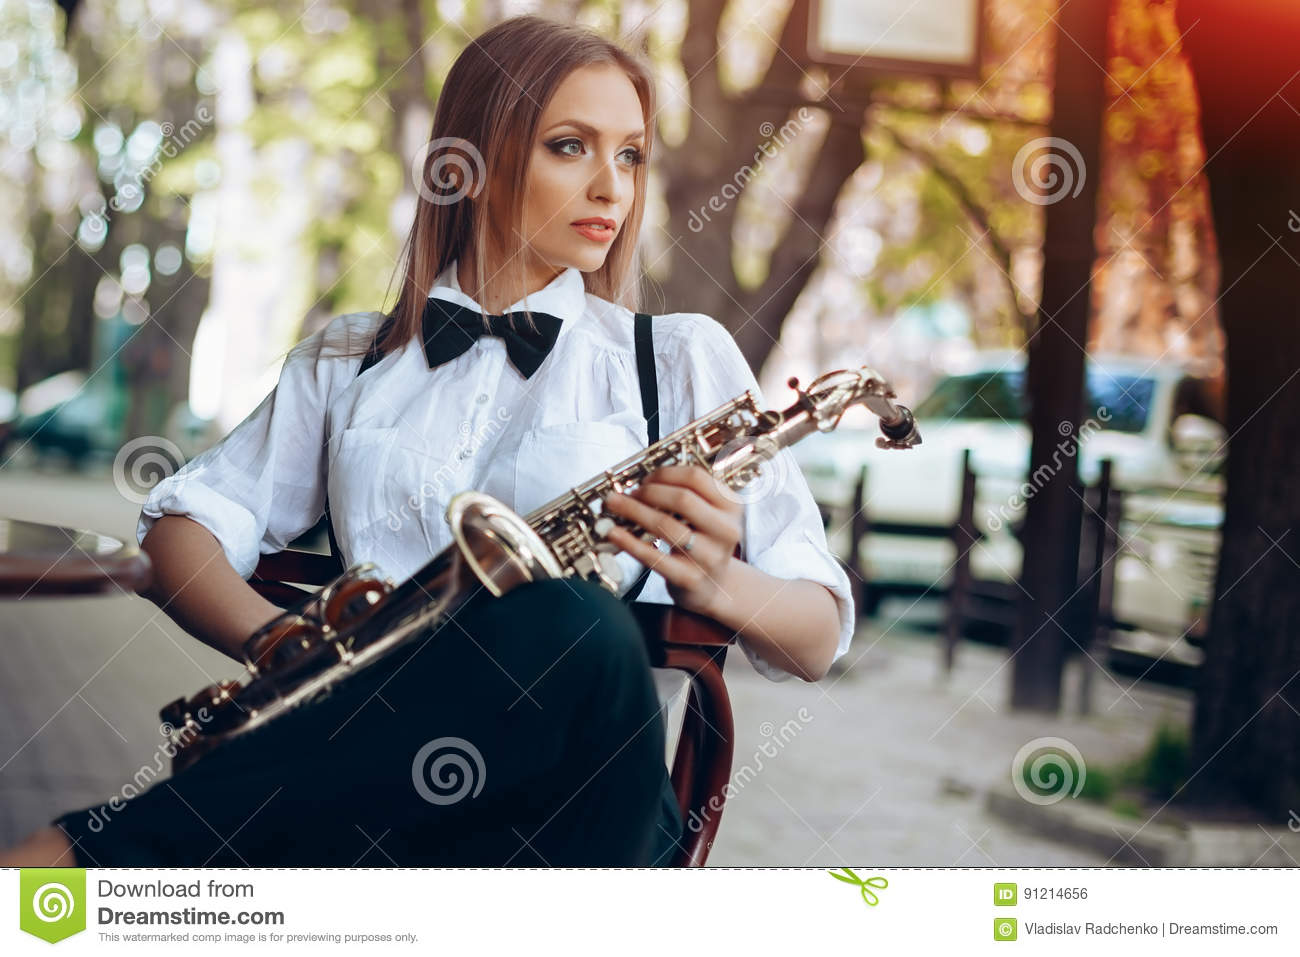 Young attractive girl in white shirt with a saxophone sitting near caffe shop - outdoor in sity. young woman with sax thinkin